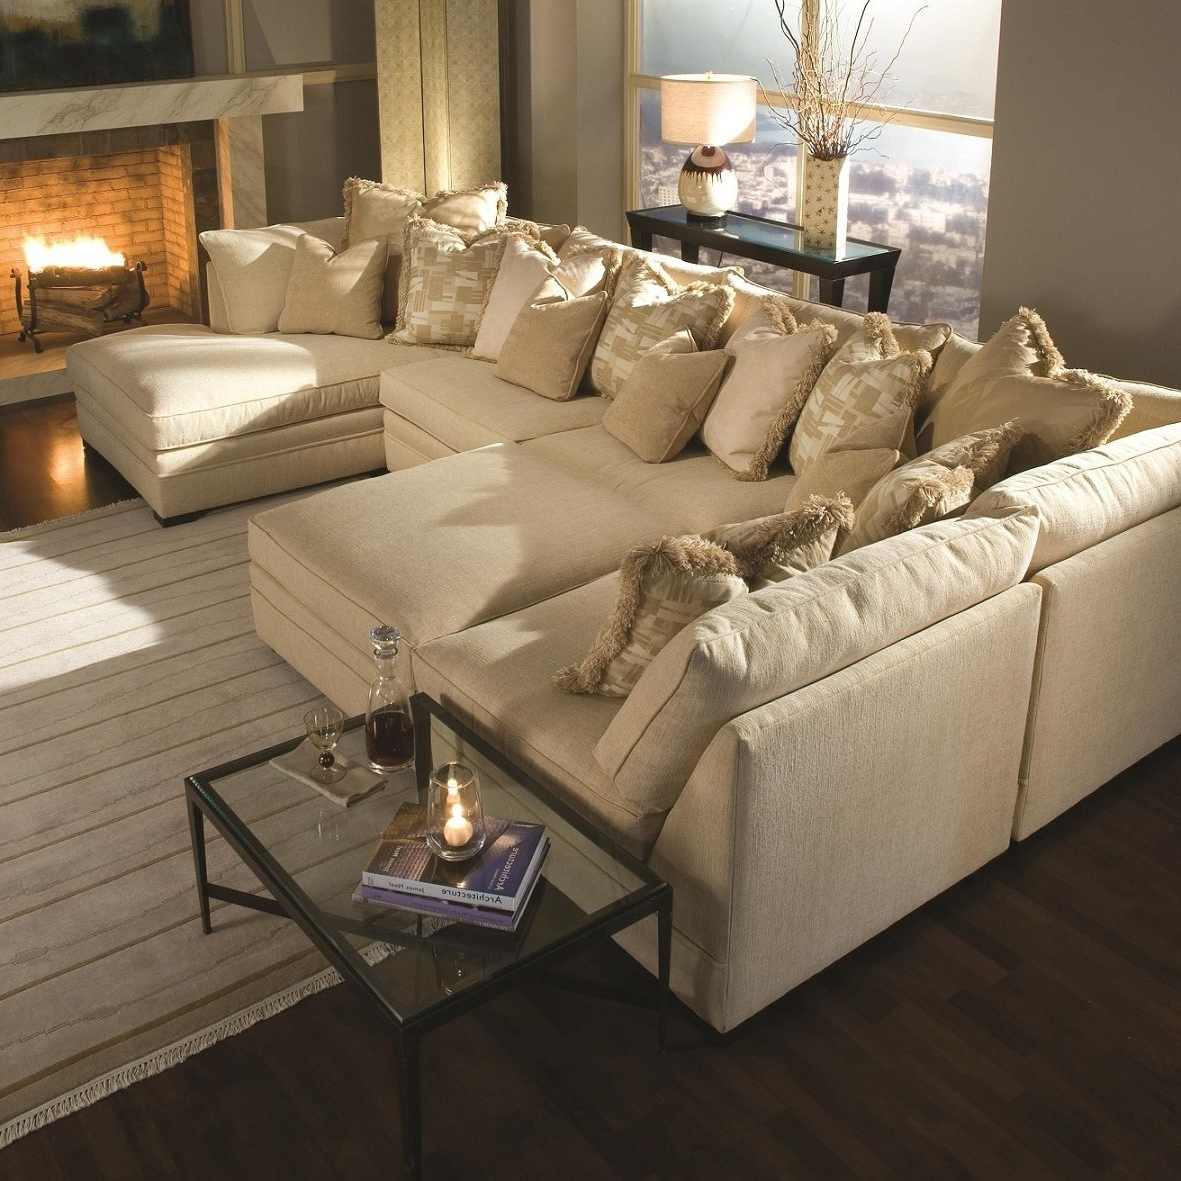 Favorite Cool Unique Extra Large Sectional Sofas With Chaise 24 For Your Intended For Extra Large Sectional Sofas (View 9 of 20)